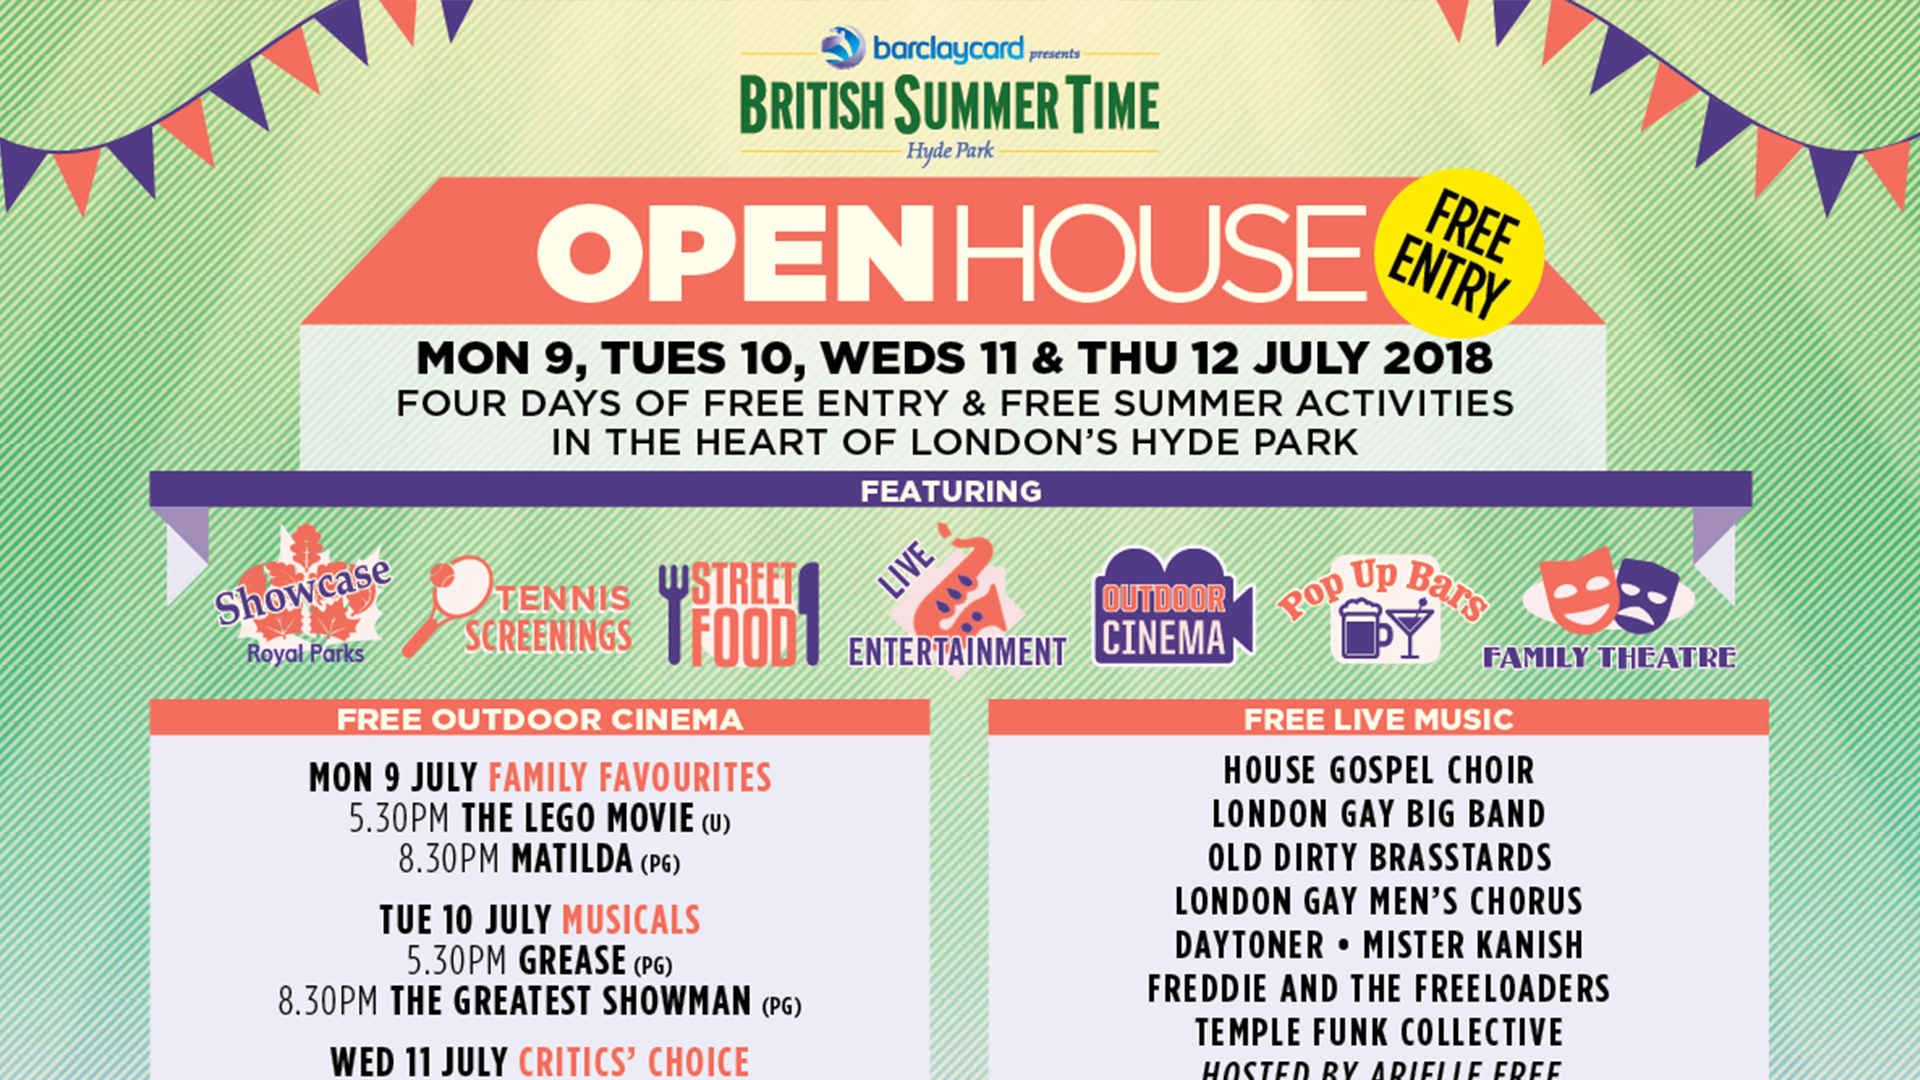 BRITISH SUMMER TIME OPEN HOUSE   Most Londoners will know that summer means a host of big name performers singing their hearts out at the series of British Summer Time concerts over various weekends in July. This year Bruno Mars, Eric Clapton, Michael Bublé and The Cure are amongst the acts taking to the stage. However, during the week from the 9th till the 12th July when the park is open, but the drumsticks are resting, there is BST  Open House : four days of free activities, music, film and food in the park. With family friendly movies, live music from gospel choirs and DJ's, plus Bingo, aerial circus acts, theatre performances AND screenings of the tennis action, it's one not to miss and your bank account needn't take a hit on entry. We'll personally be heading down on Tuesday 10th to see an open-air screening of The Greatest Showman. You really can't beat sitting in the beautiful Hyde Park on a summers eve with a cold beer and a carton of chips in hand...in our humble opinion.  Instagram  |  Twitter  |  Facebook  Image Credit British Summer Time Open House©